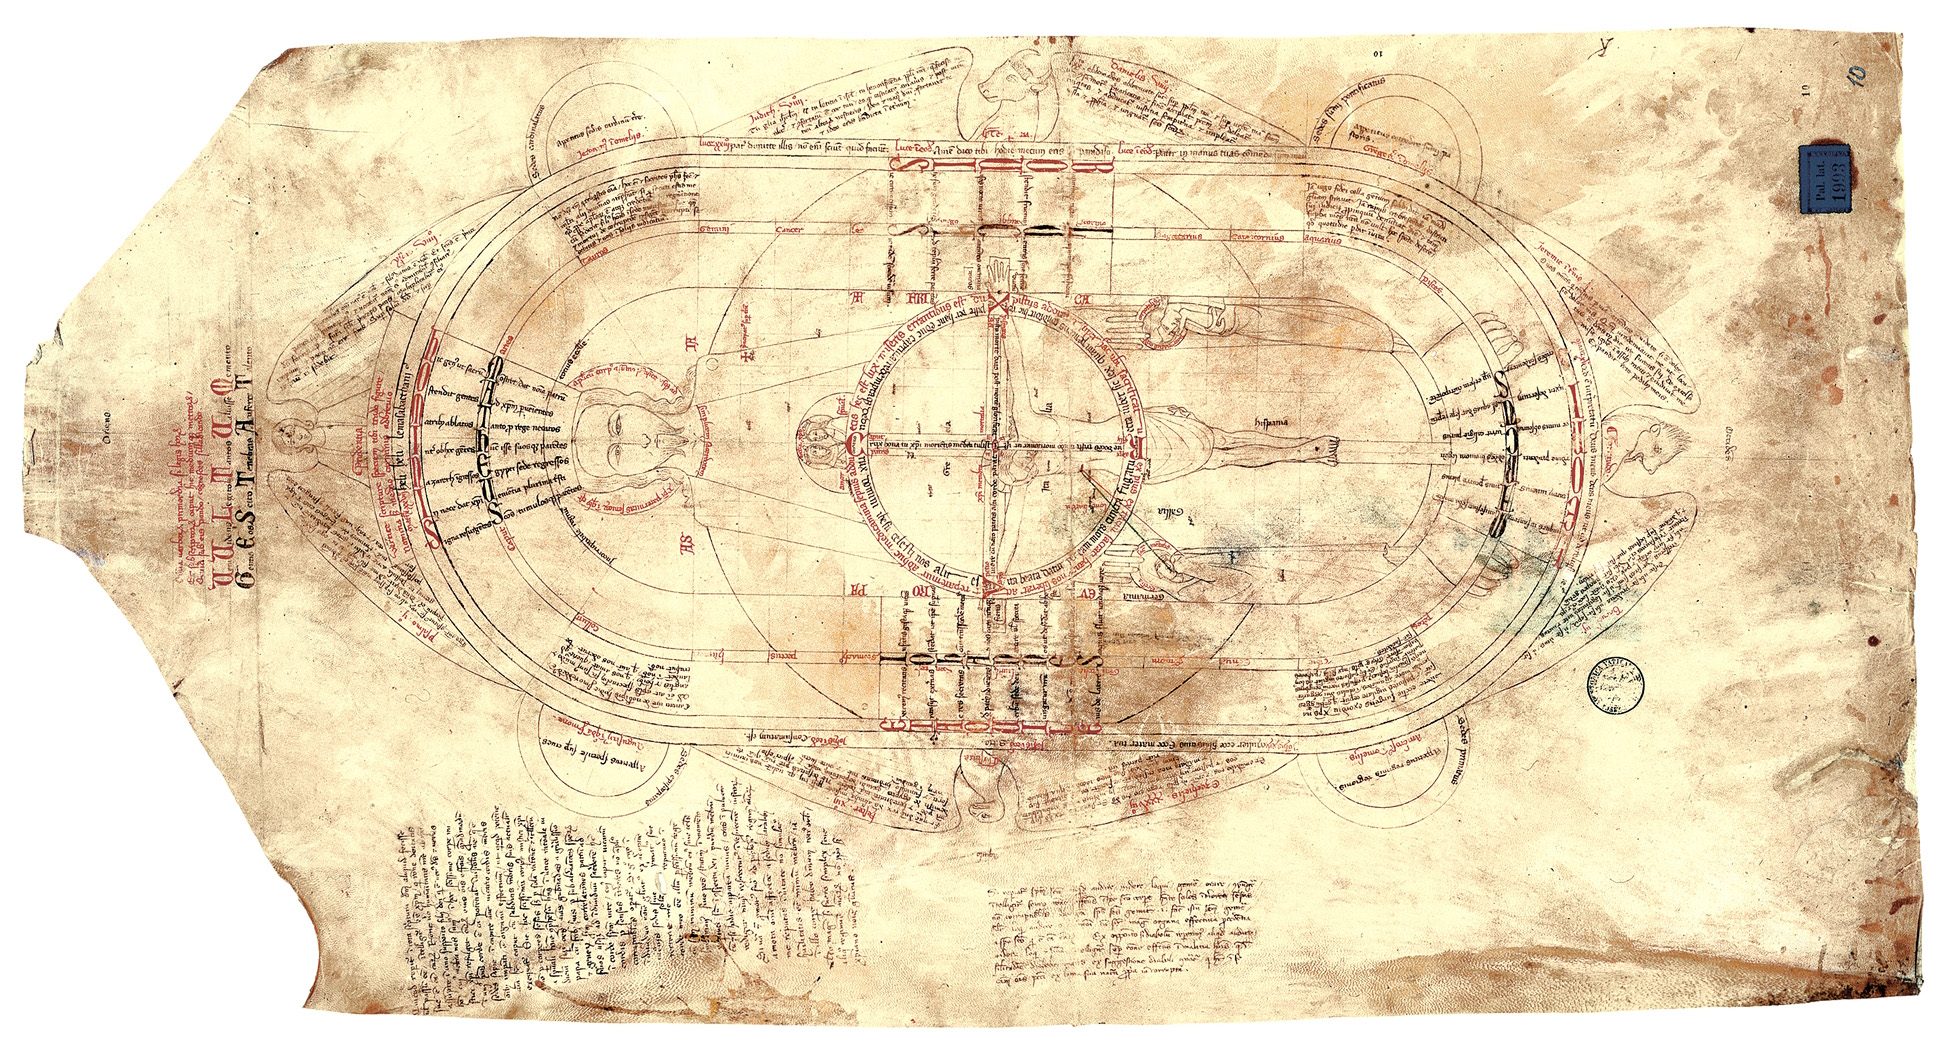 1952x1056 Pen And Parchment Drawing In The Middle Ages Arkinet